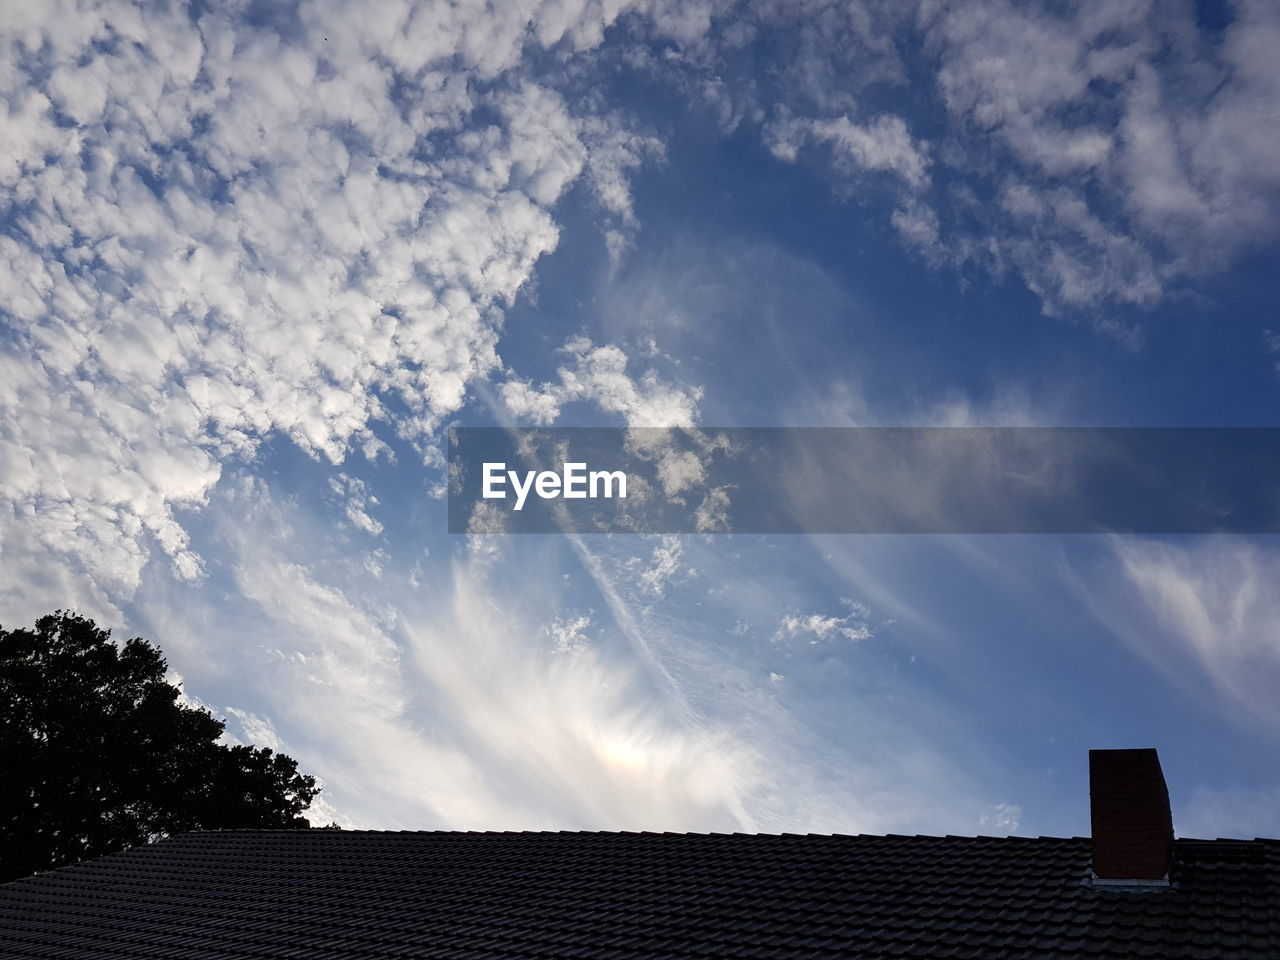 cloud - sky, sky, roof, architecture, built structure, nature, low angle view, house, building exterior, building, no people, roof tile, day, outdoors, high section, residential district, plant, chimney, beauty in nature